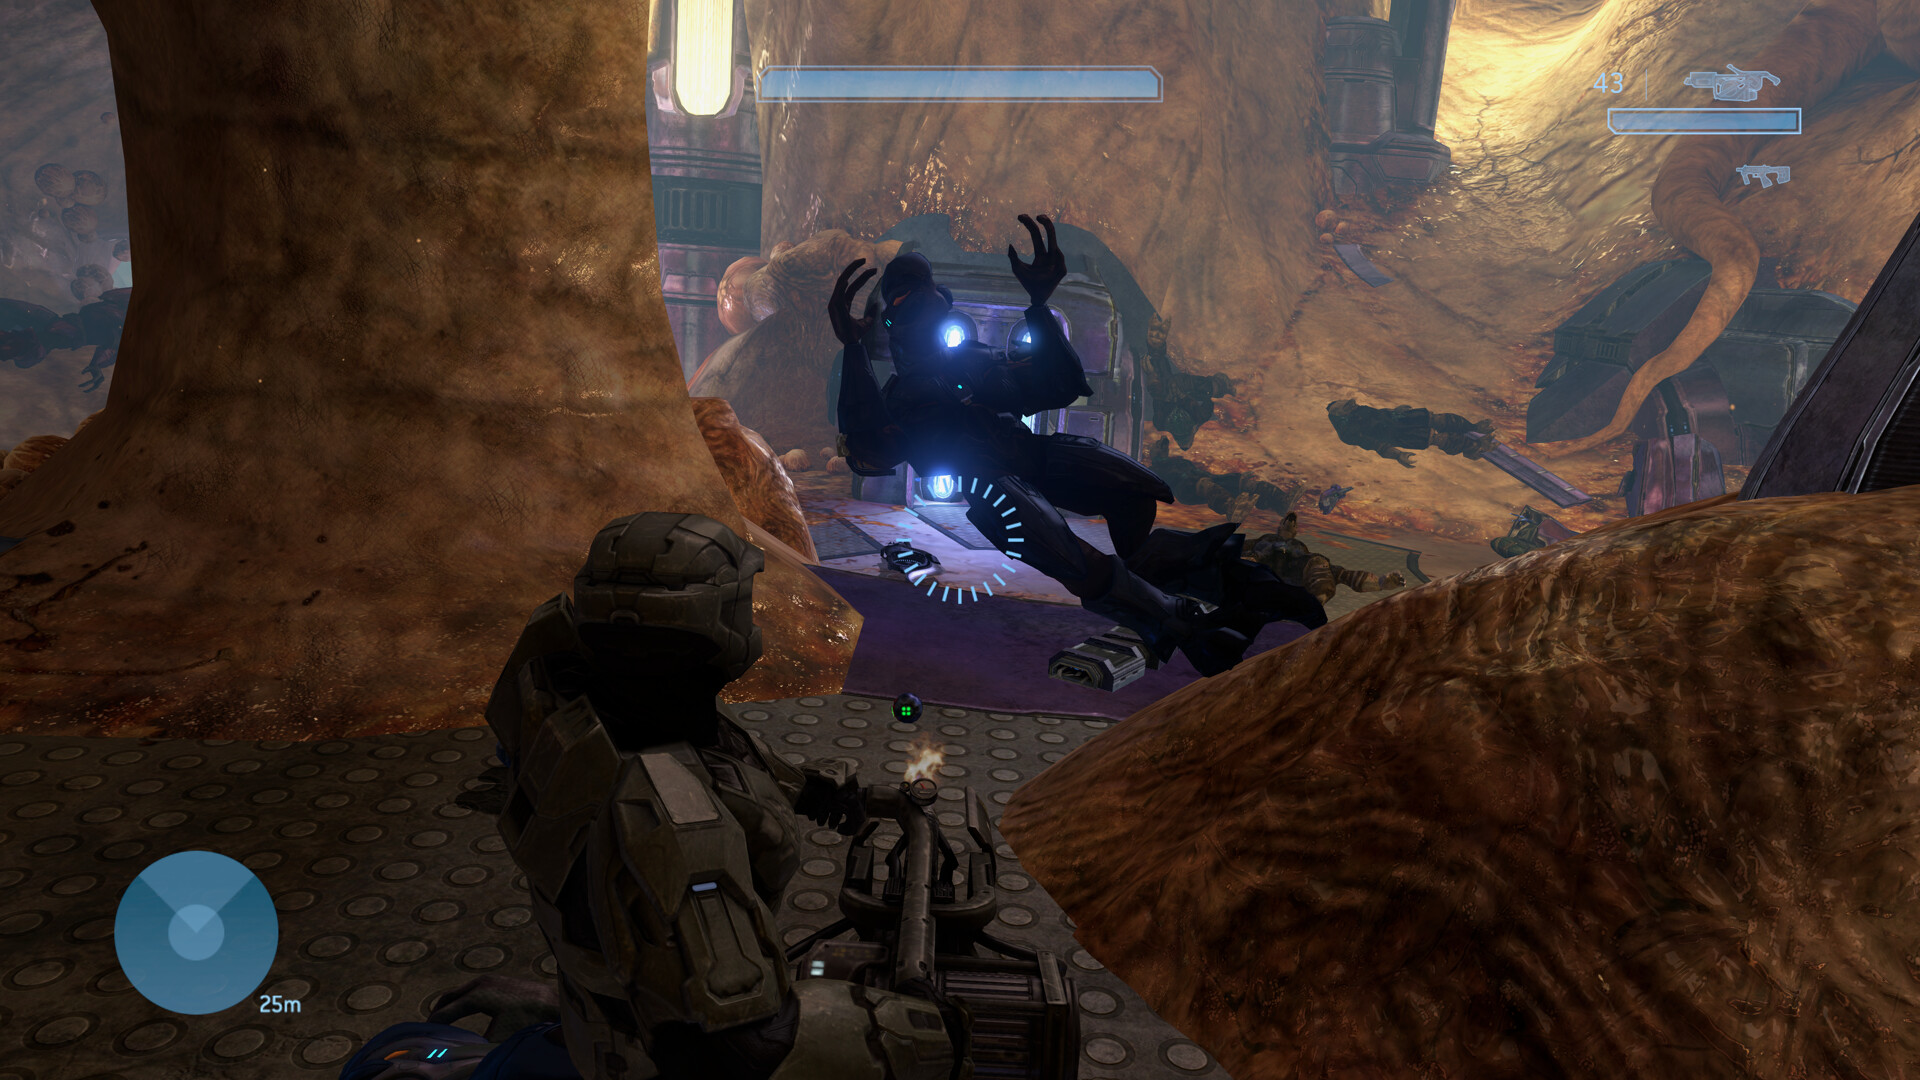 Halo_ The Master Chief Collection 2021-06-25 17-36-51